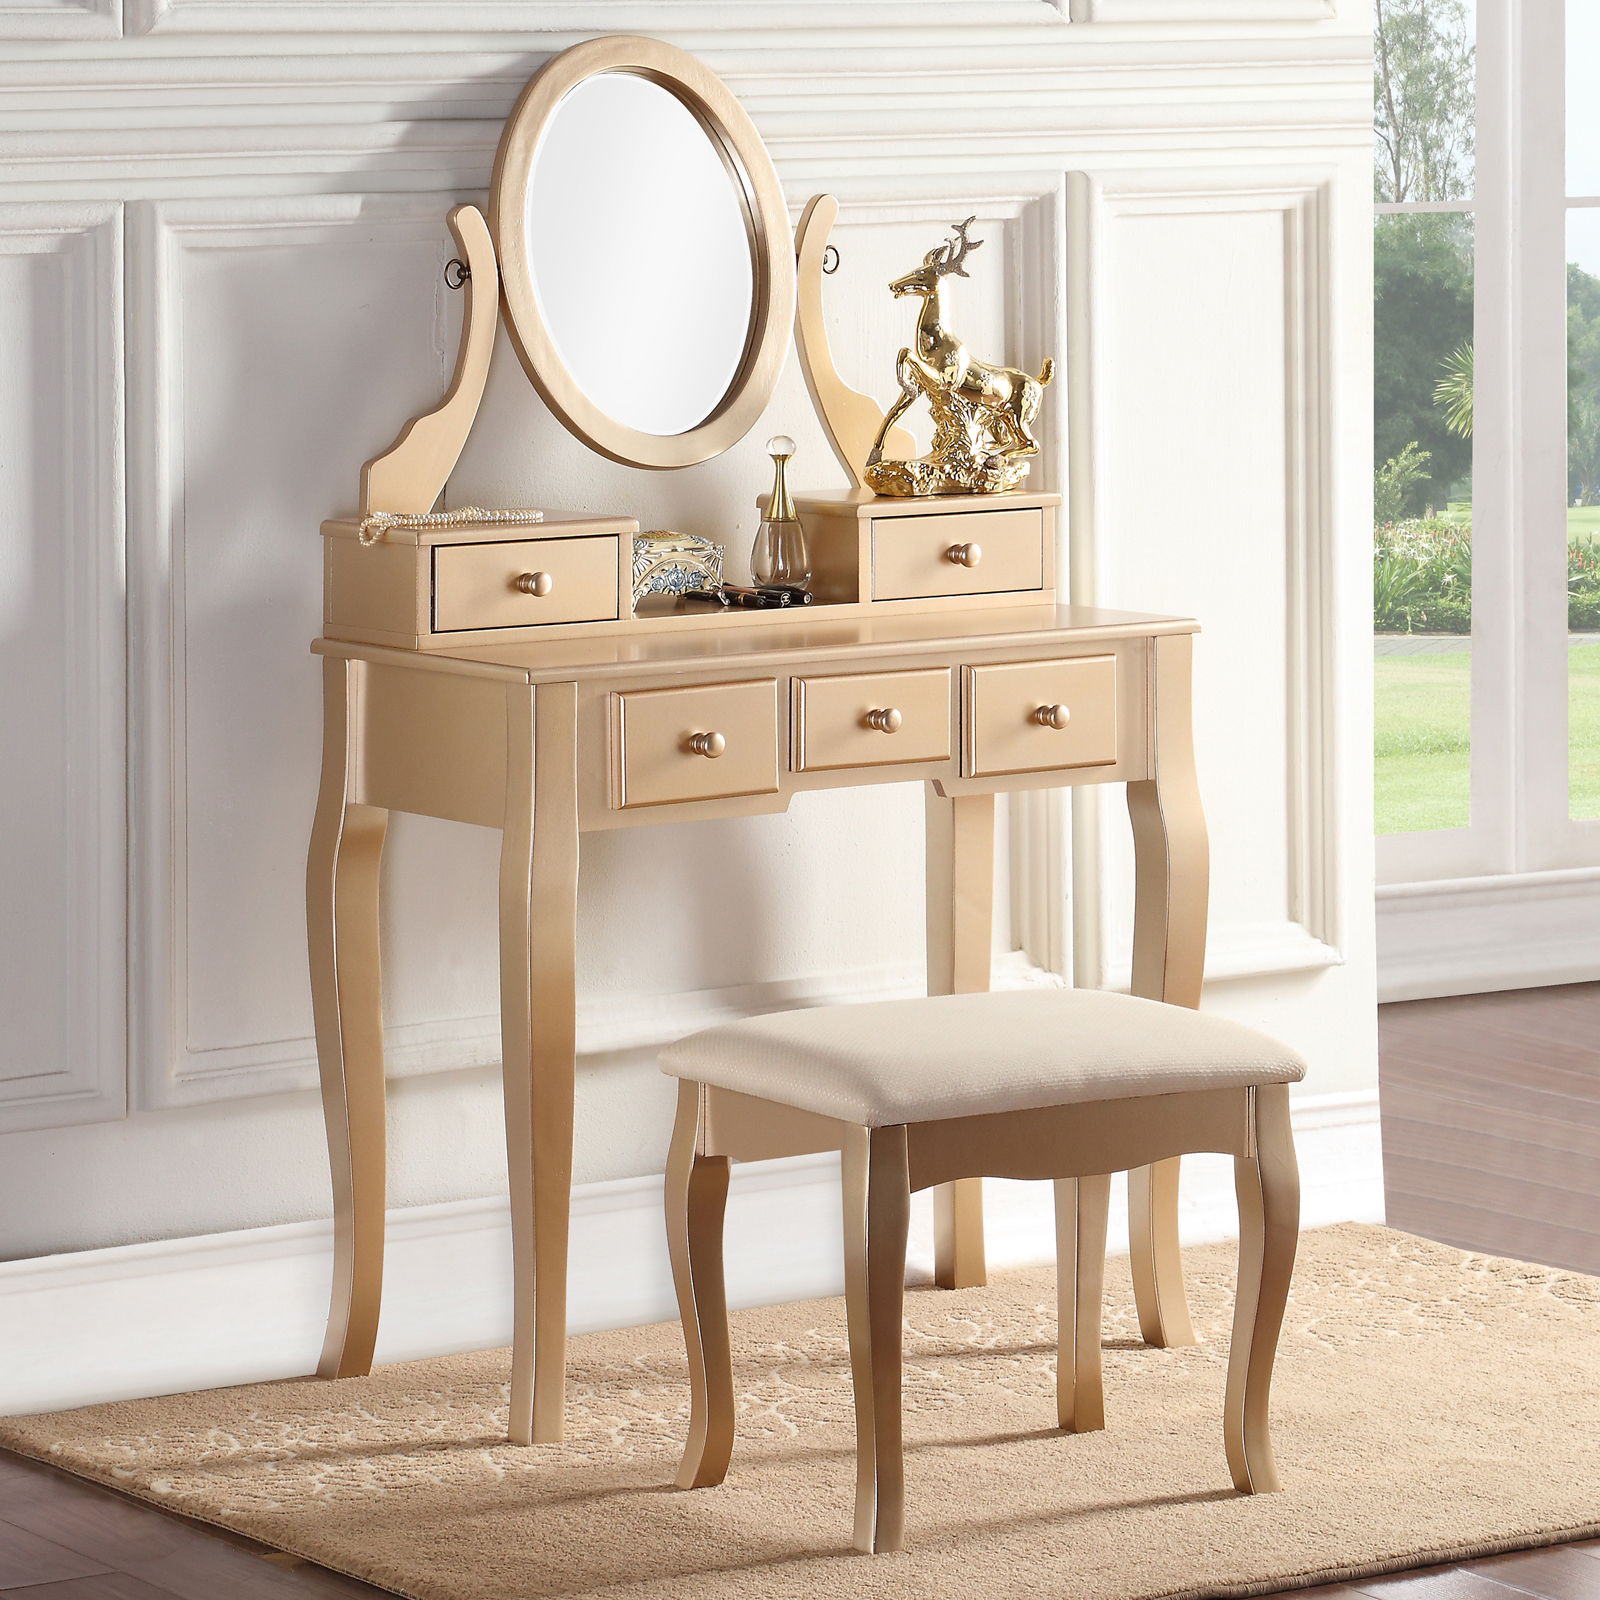 Exceptional Roundhill Furniture Ashley Wooden Bedroom Vanity And Stool Set